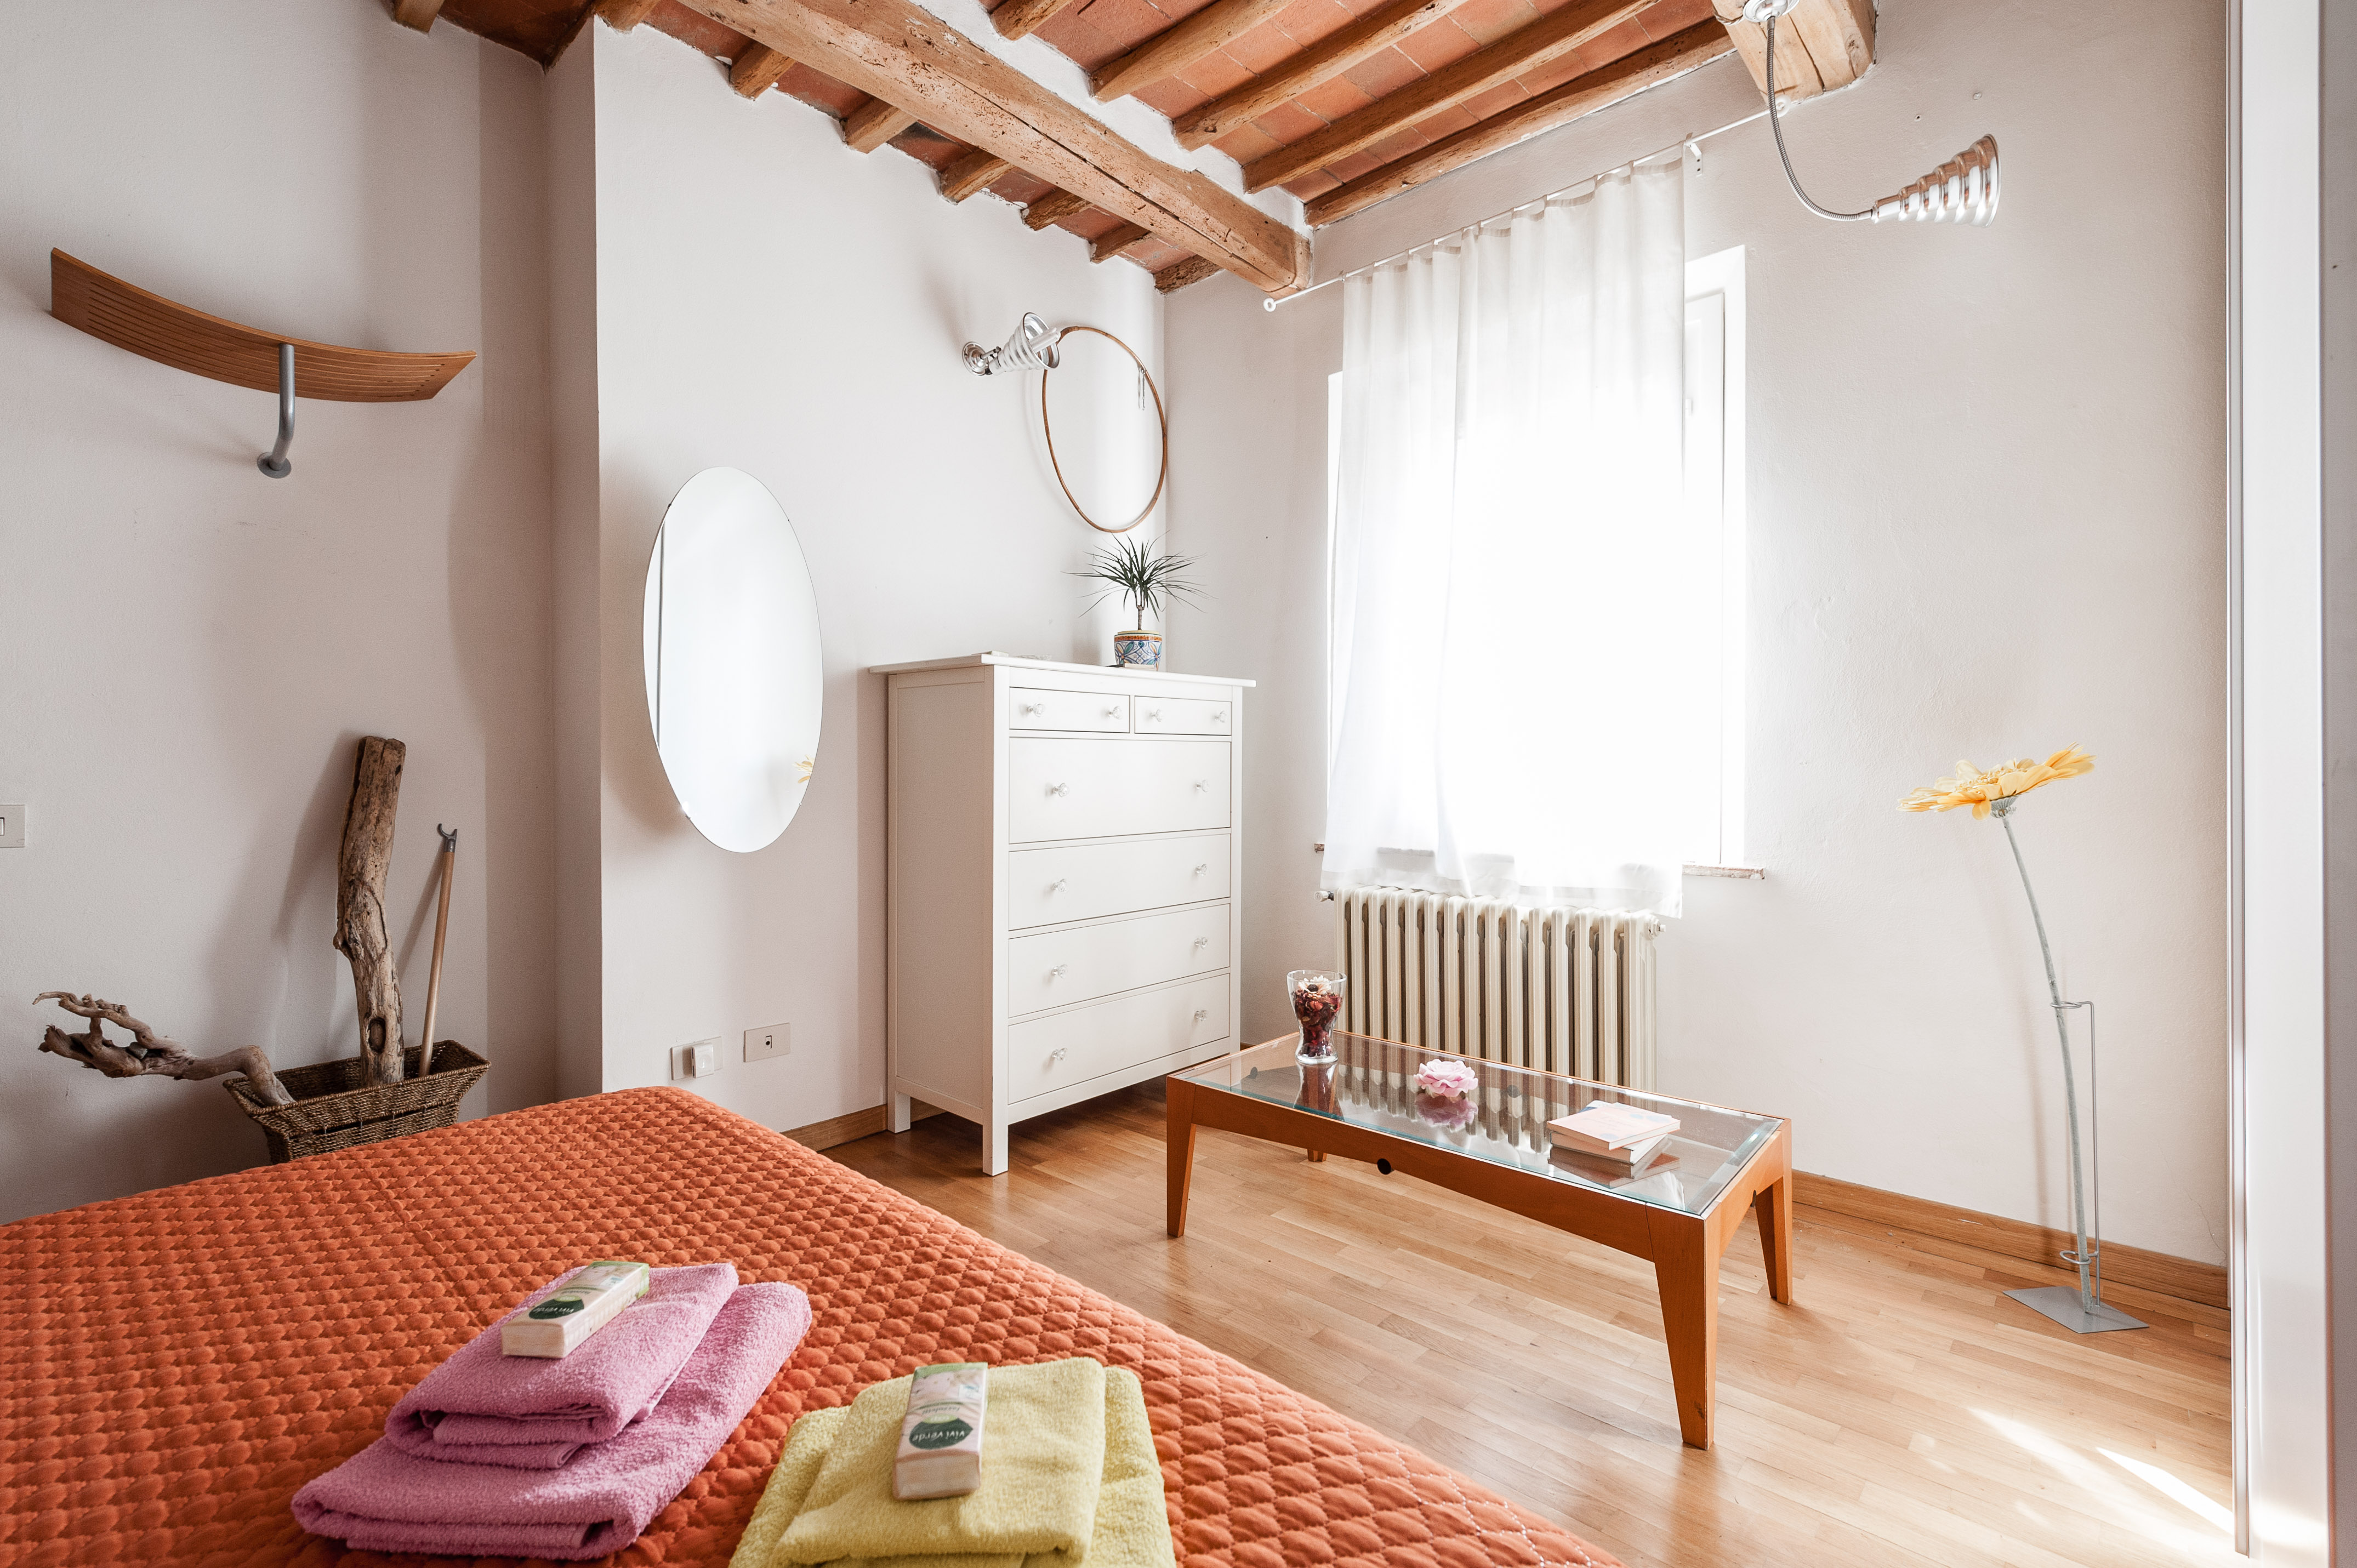 airbnb-0174